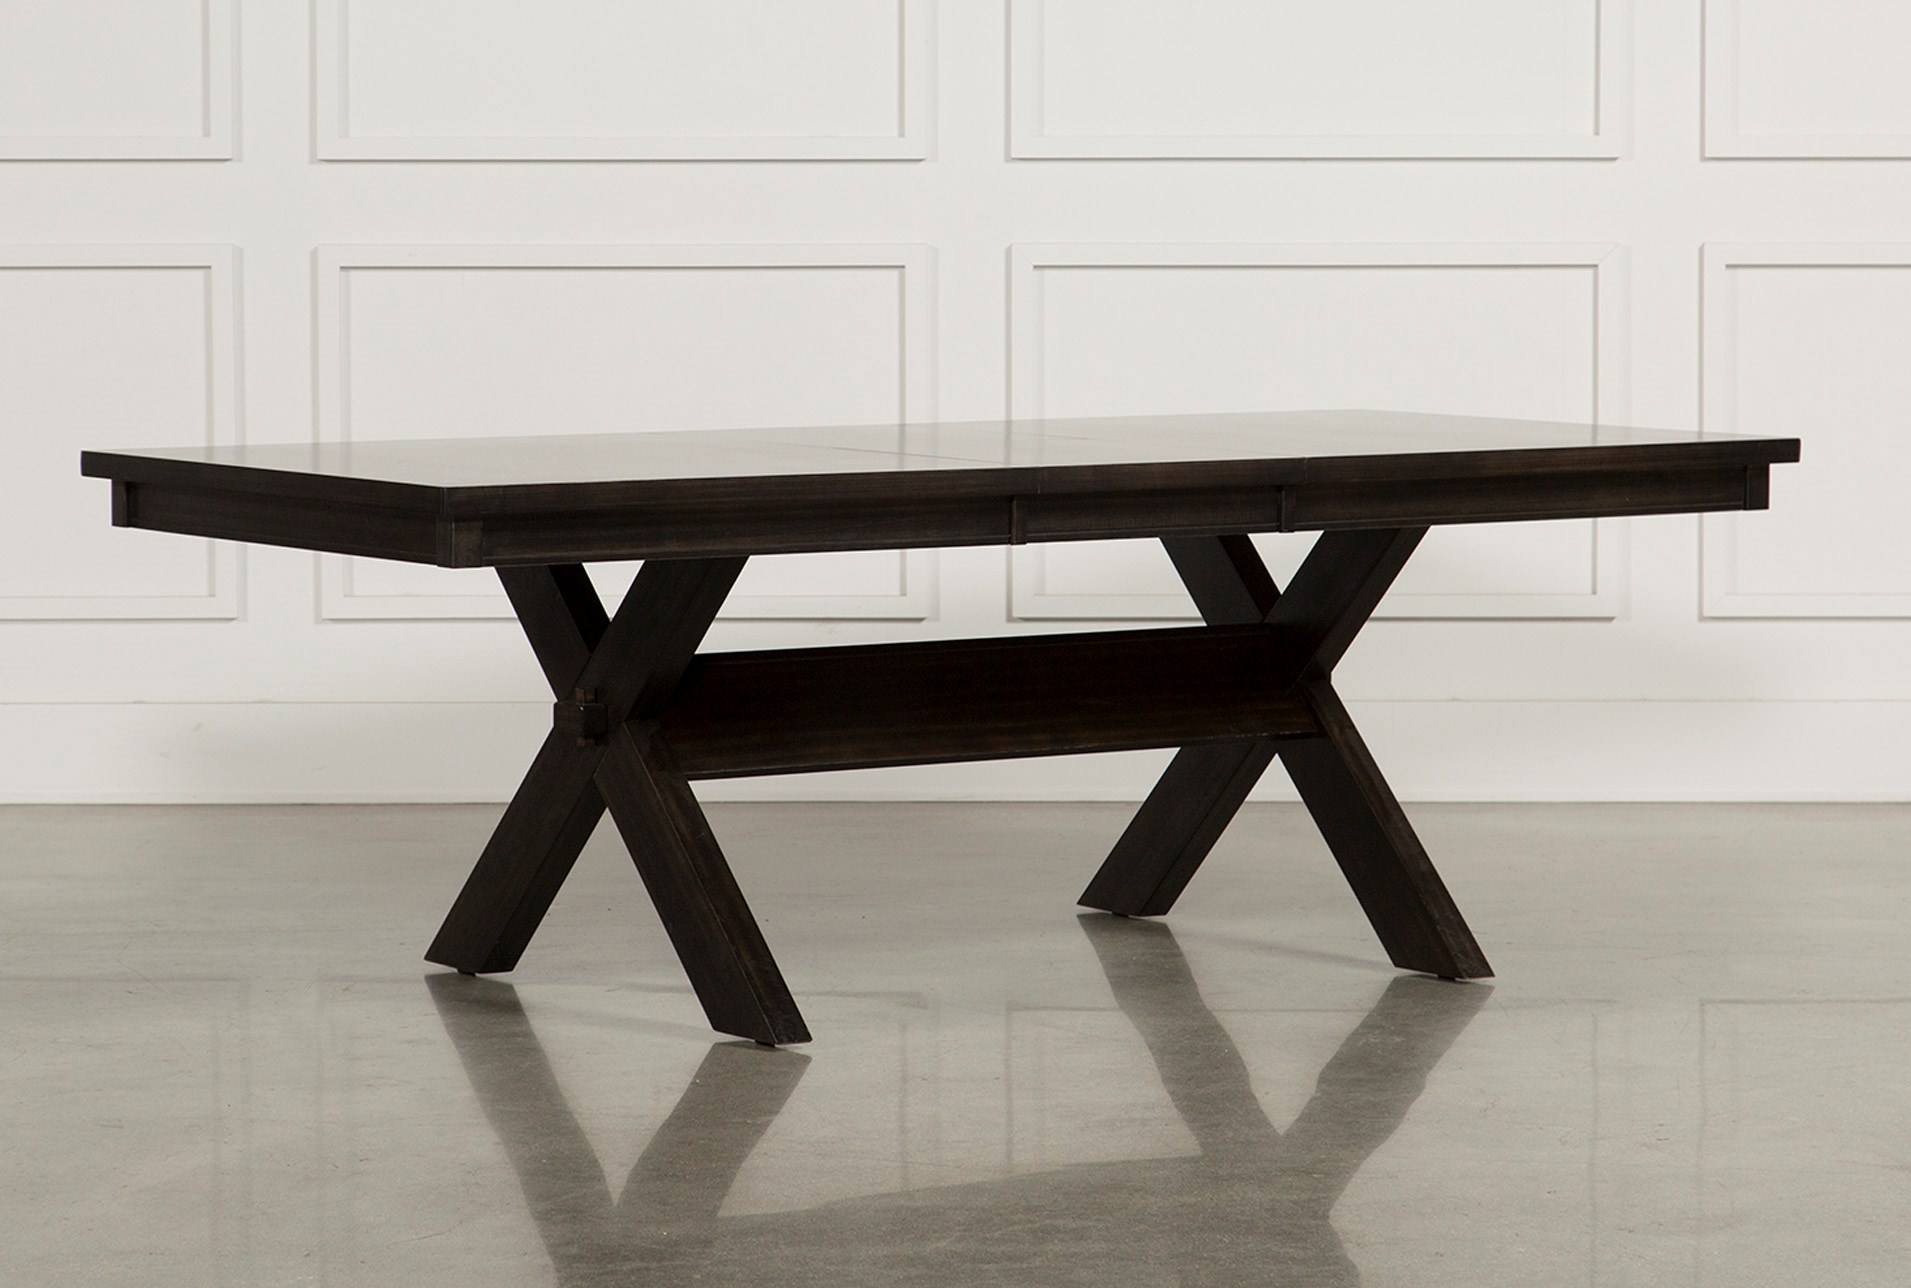 f9f99fdaec34 Pelennor Extension Dining Table (Qty  1) has been successfully added to  your Cart.